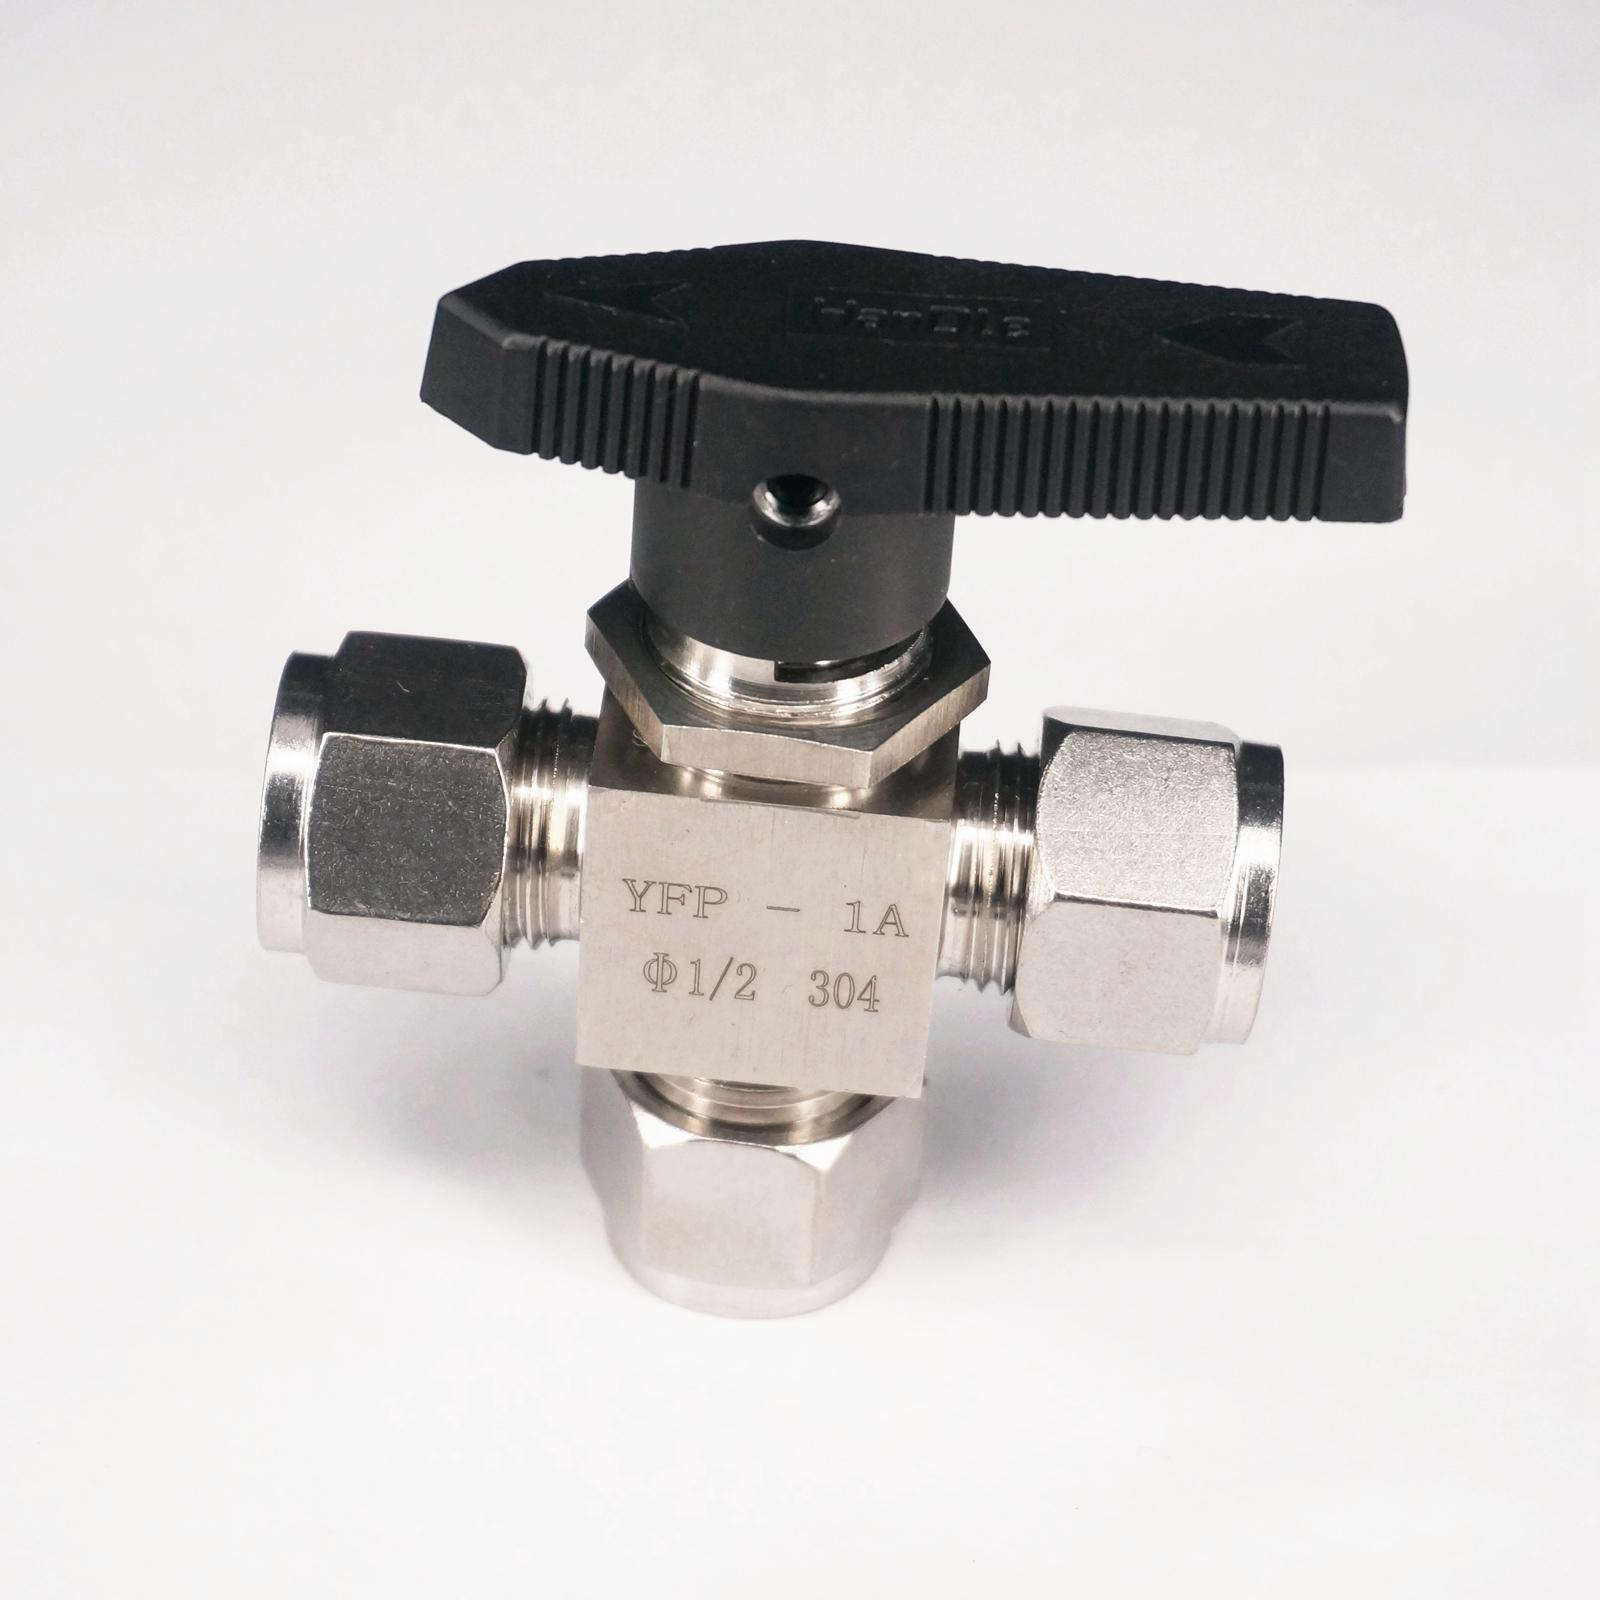 304 Stainless steel Tee 3 Ways Compression fitting shut off Ball Valve 915 PSI PN 6.4 Fit For 1/2 inch O/D Tube 1 2 bsp female 304 stainless steel flow control shut off needle valve 915 psi water gas oil